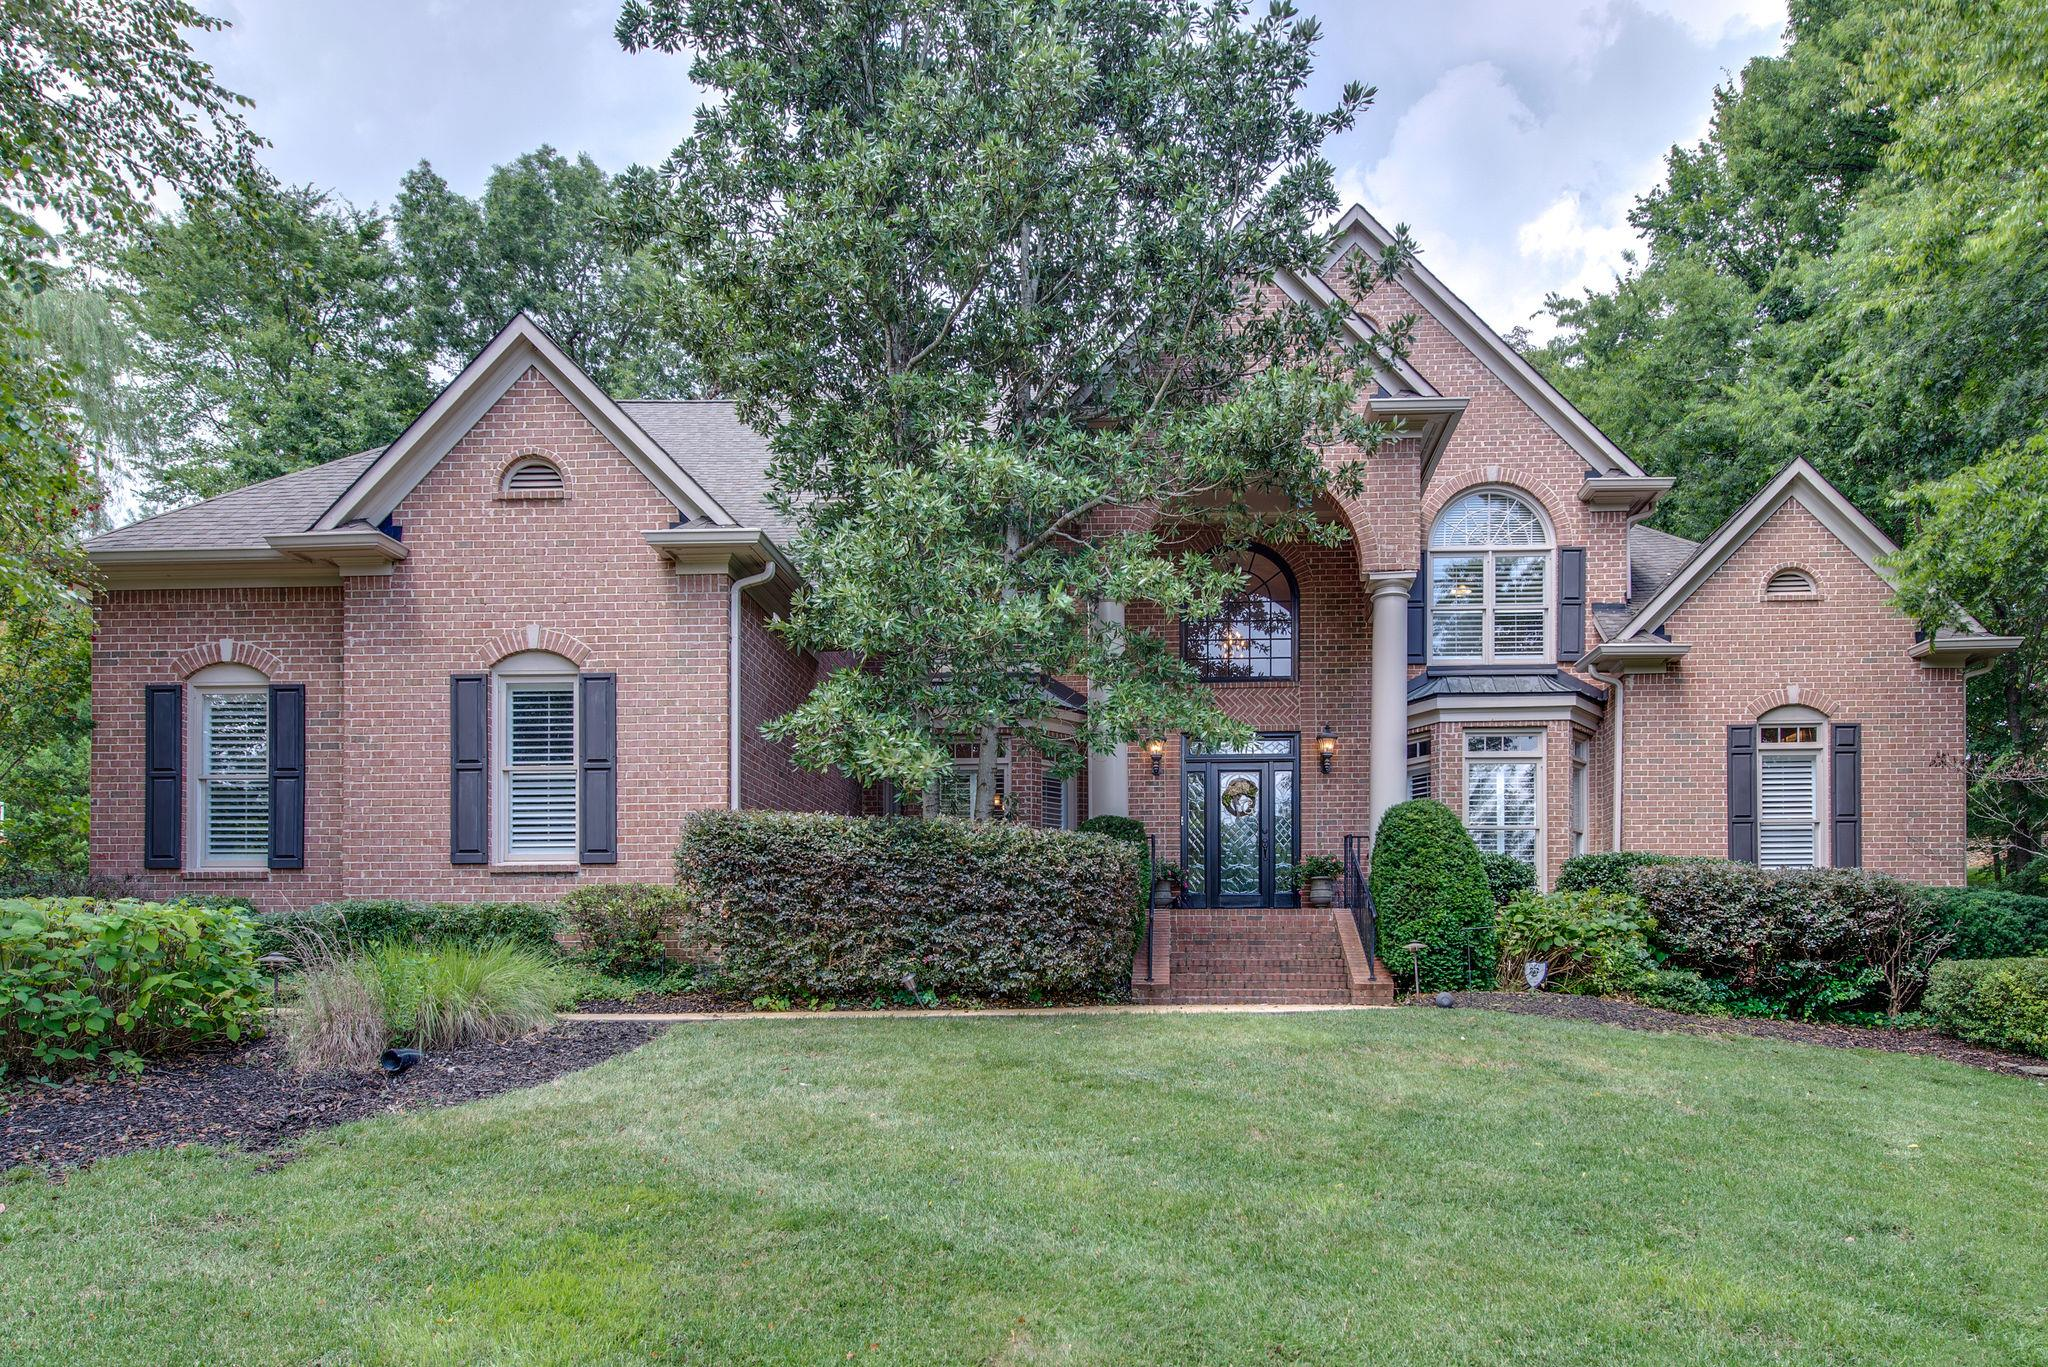 9644 Brunswick Dr, Brentwood, TN 37027 - Brentwood, TN real estate listing